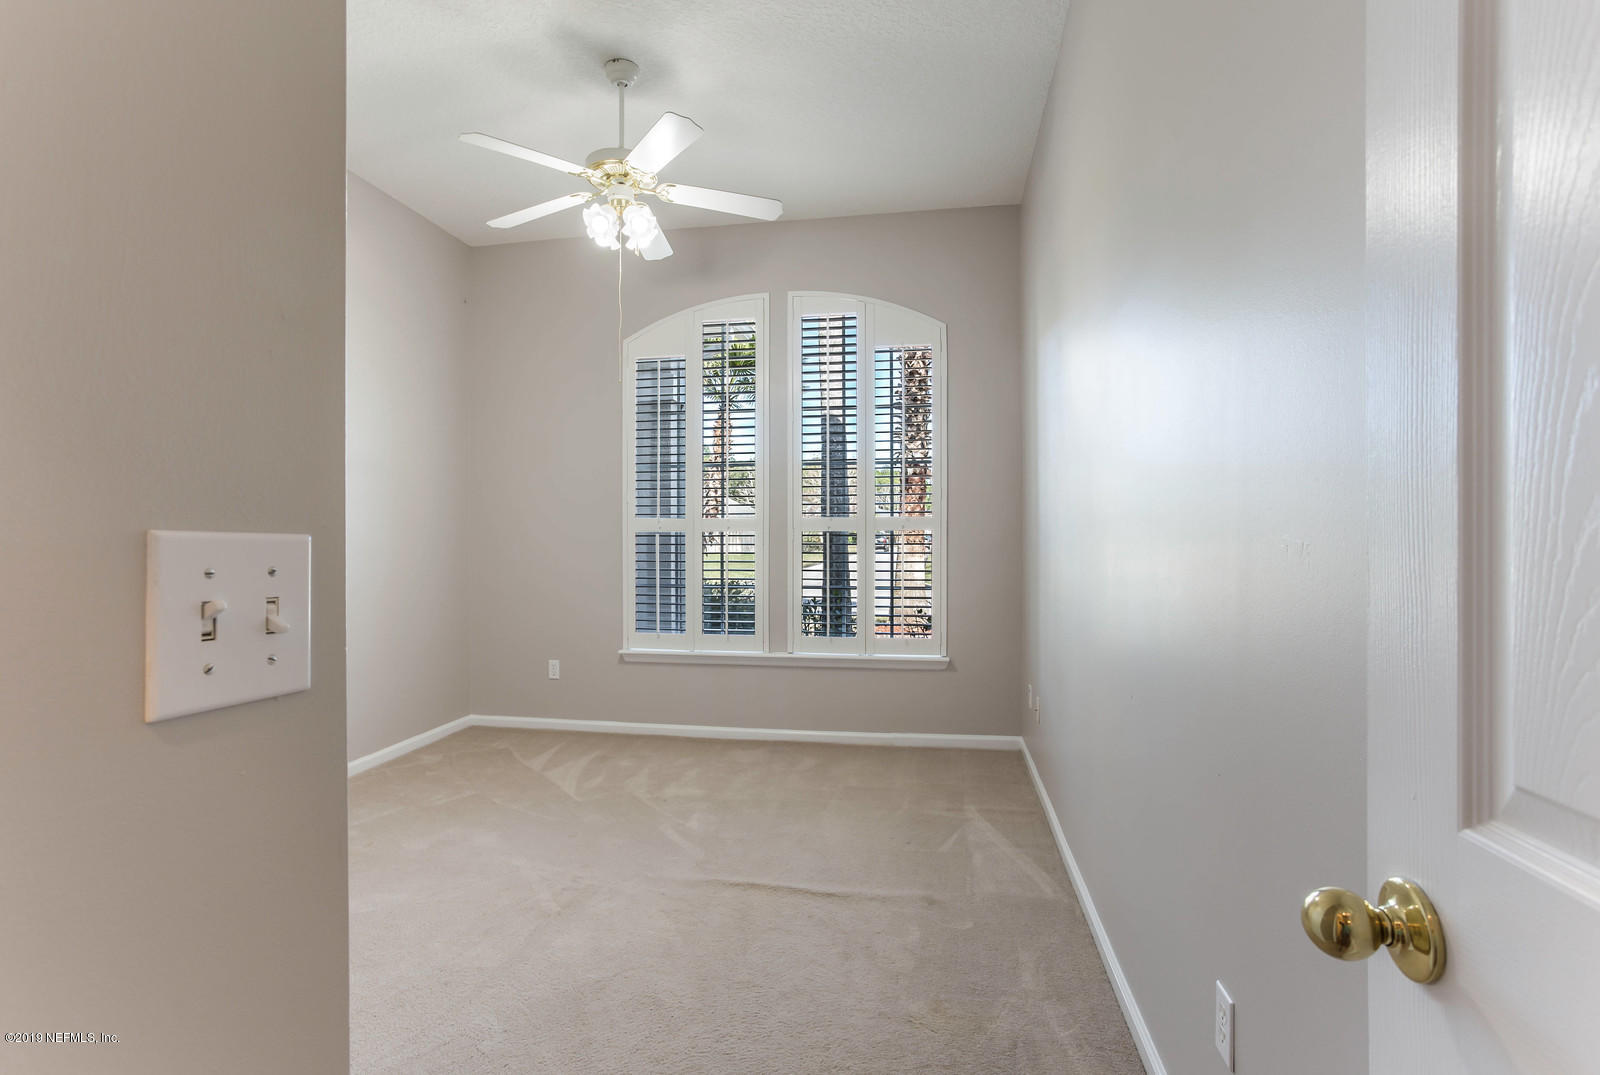 1701 LOCHAMY, ST JOHNS, FLORIDA 32259, 4 Bedrooms Bedrooms, ,3 BathroomsBathrooms,Residential - single family,For sale,LOCHAMY,974165